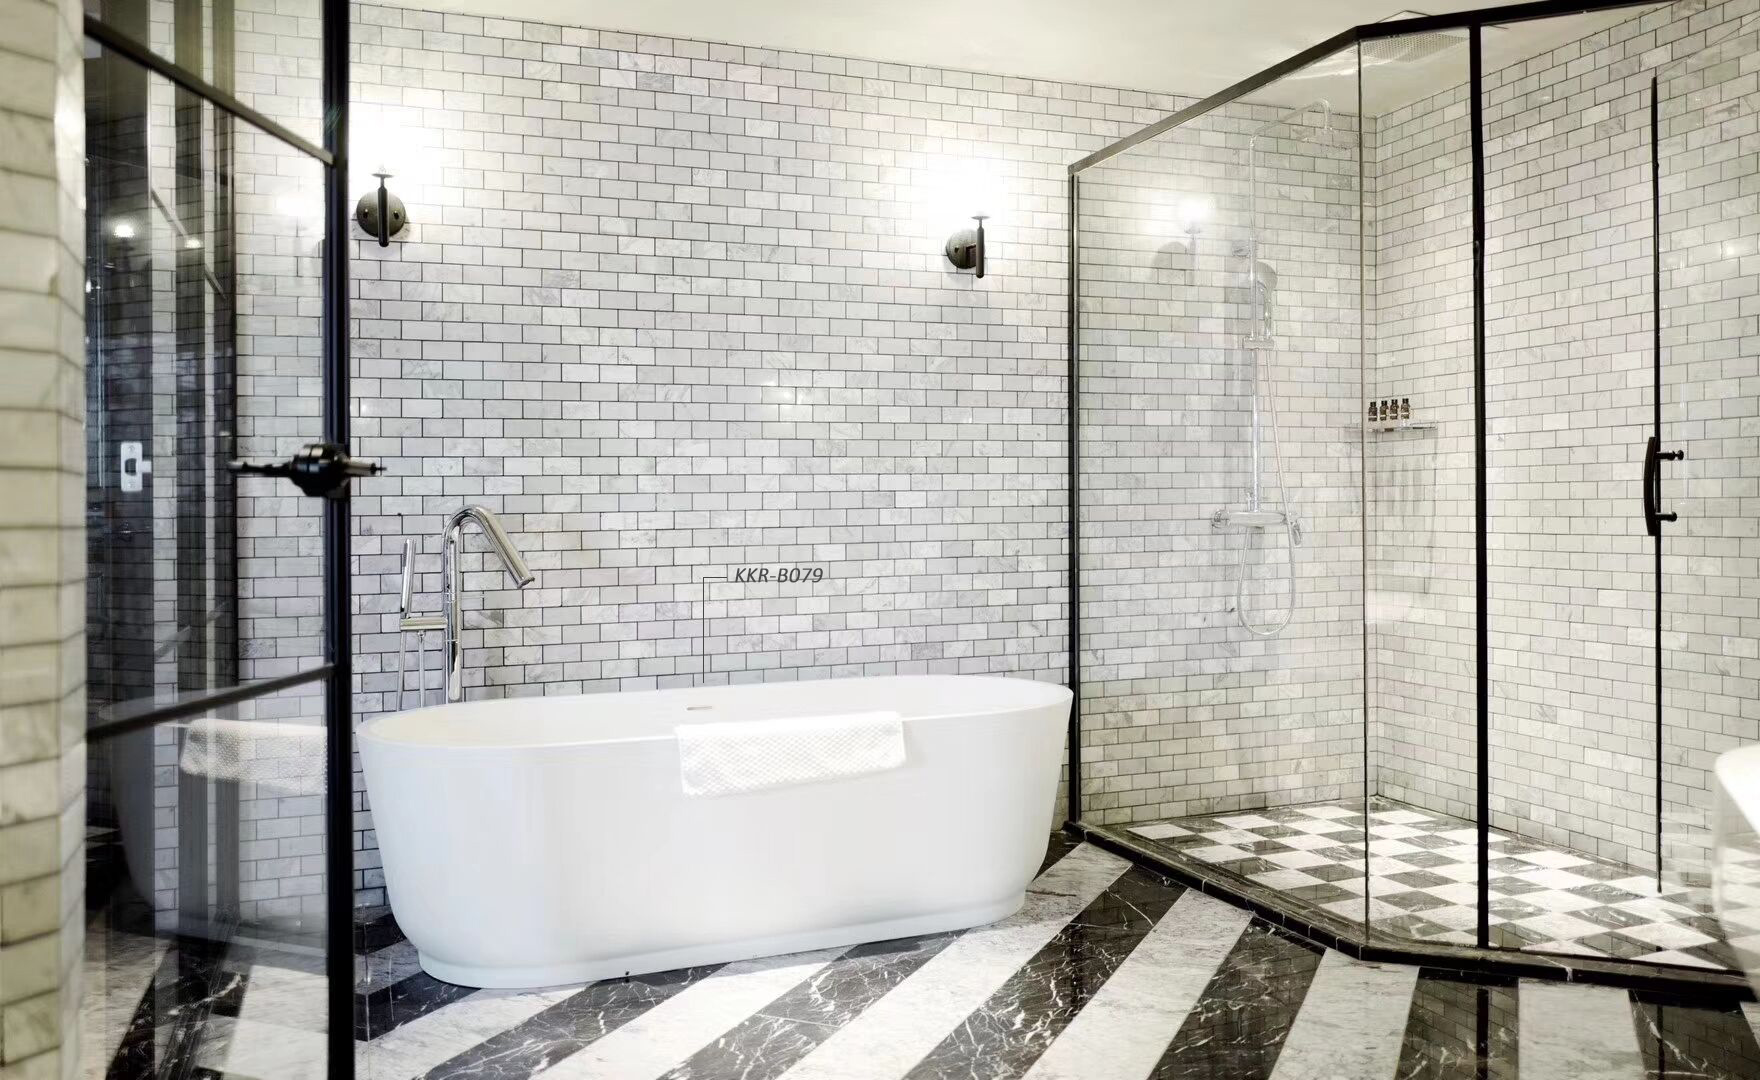 What is the best material for a bathtub?